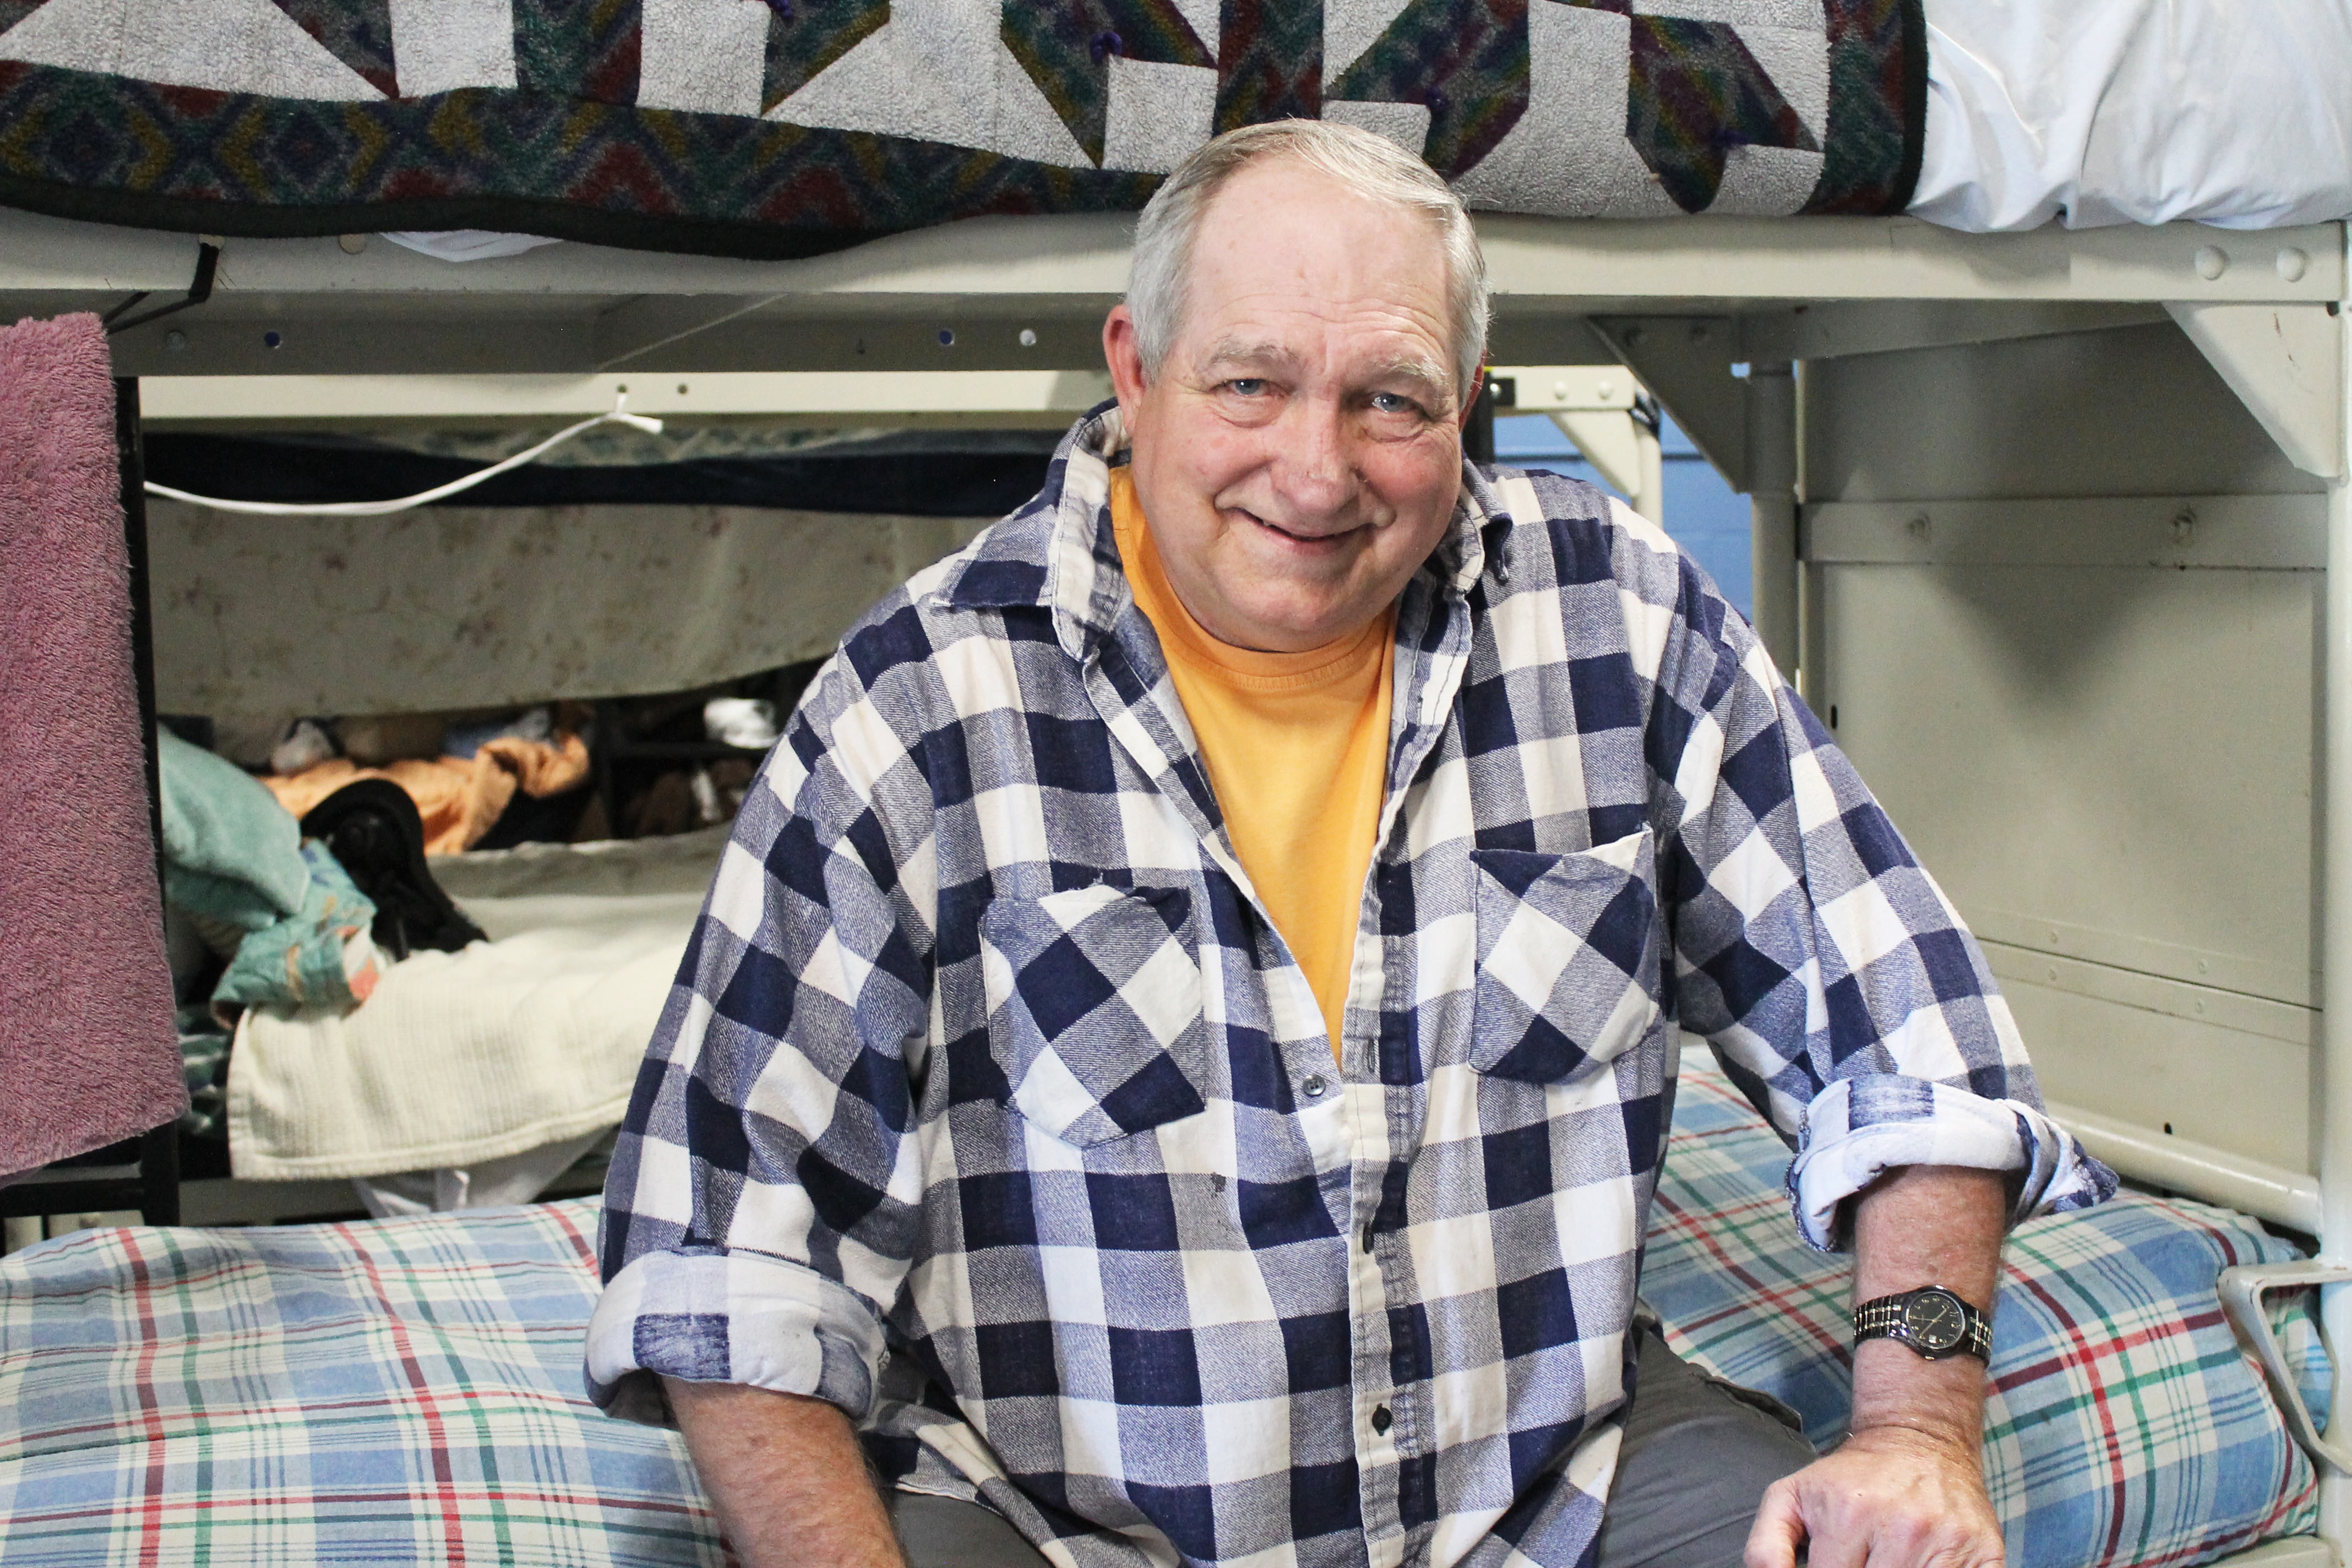 interfaith community services overcoming homelessness when art came to interfaith ten months ago he was 62 years old and having a hard time finding work he had been laid off from his job as an electrical